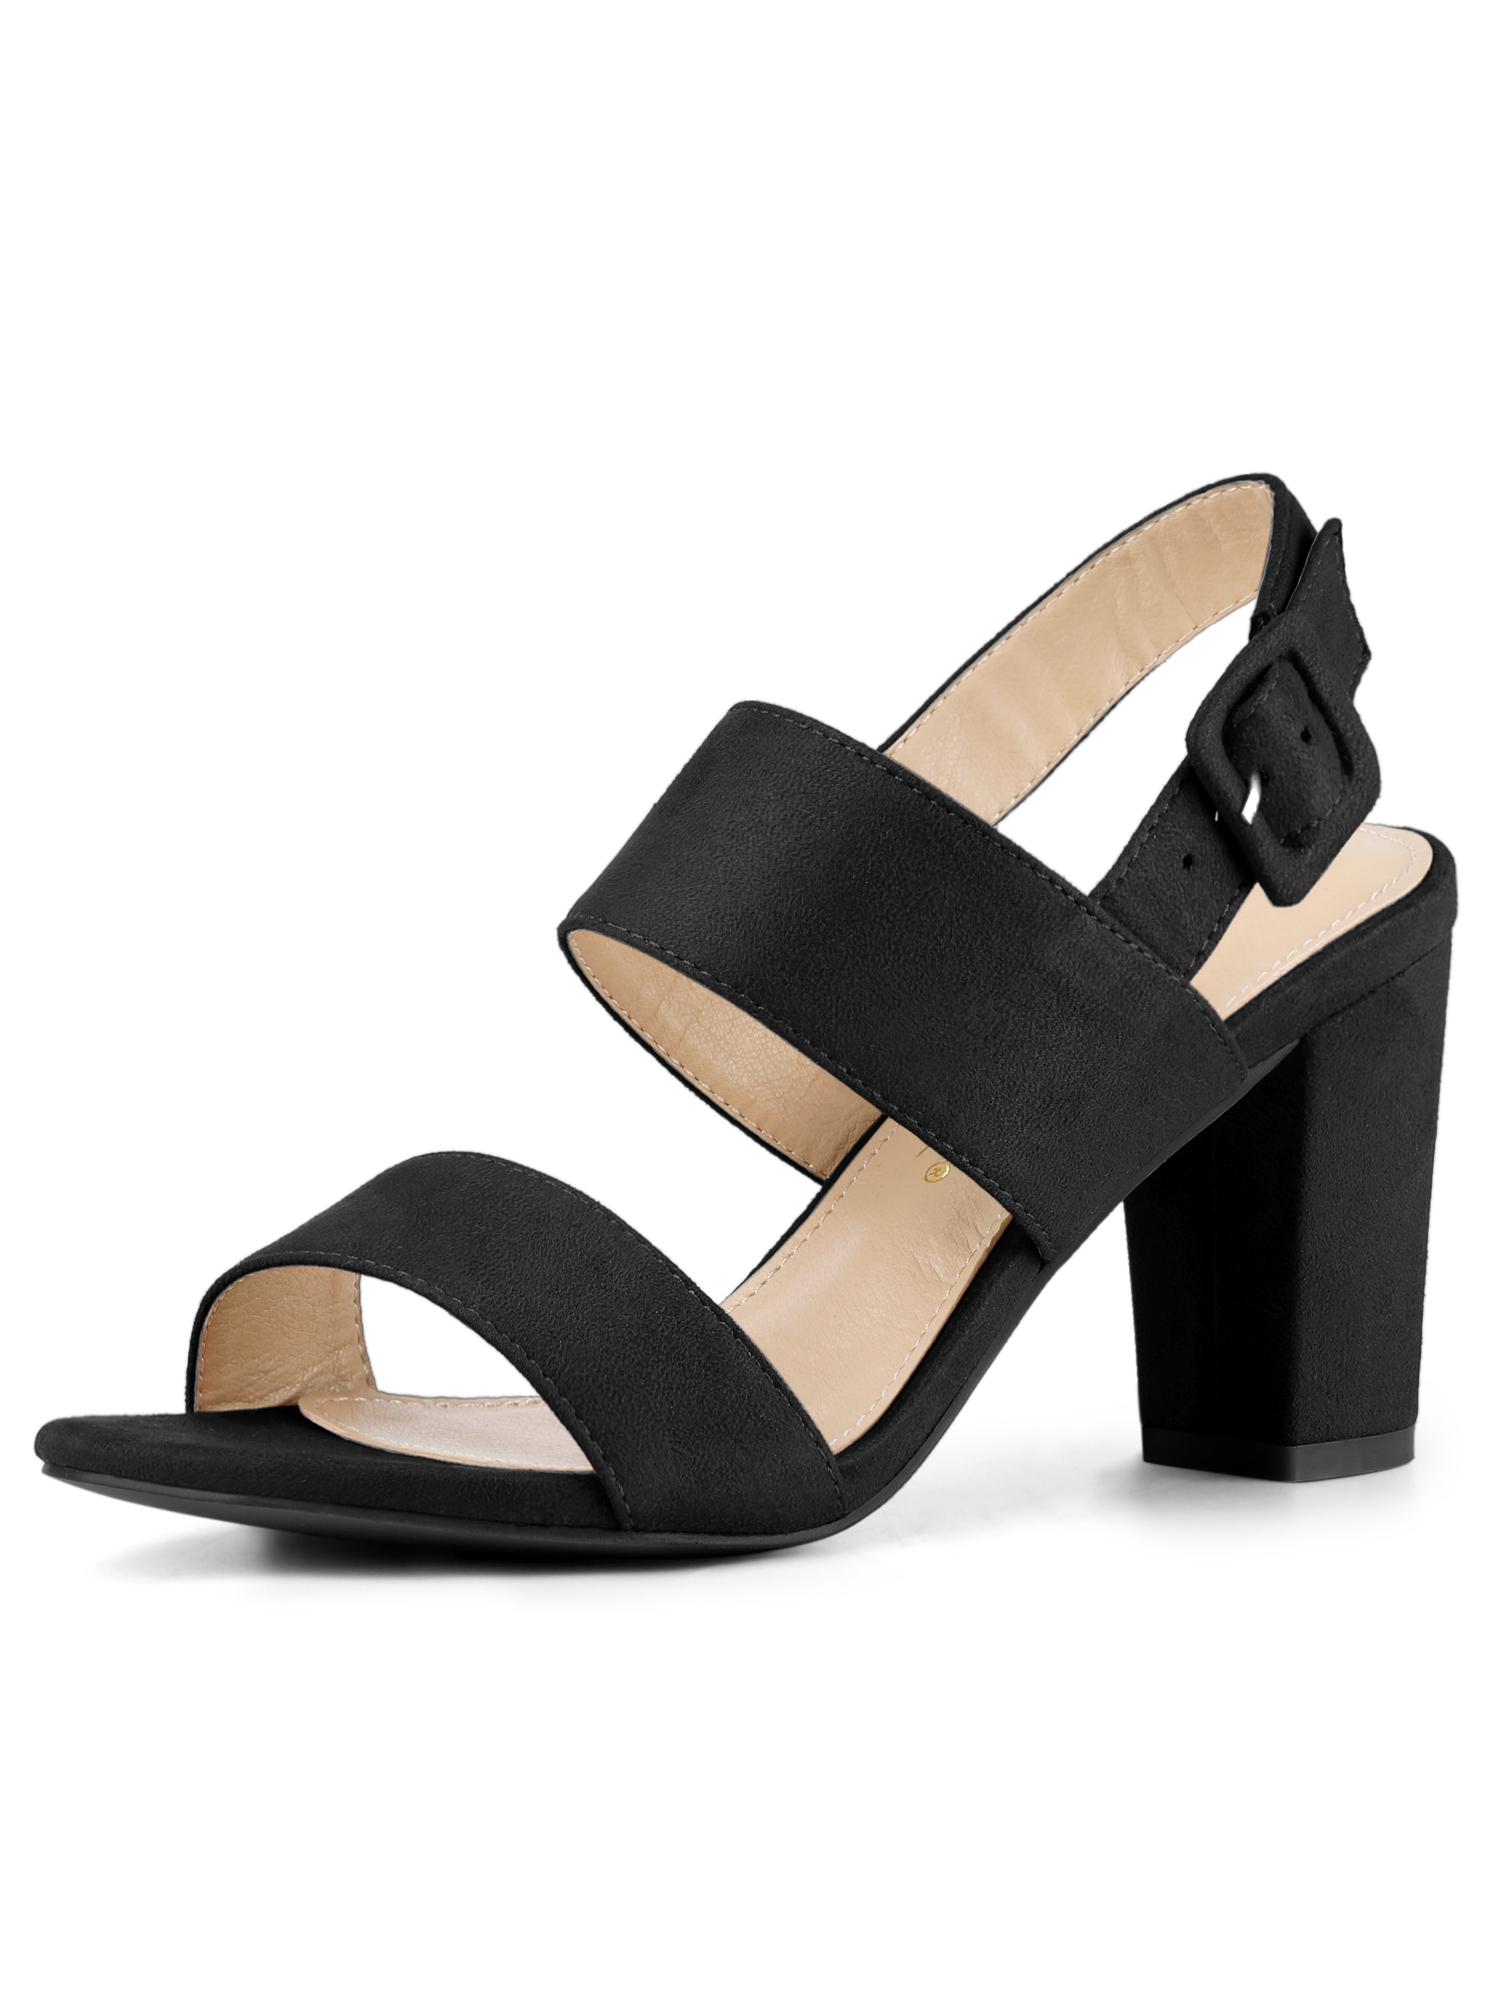 Women's Slingback High Block Heel Ankle Strap Sandals Black (Size 8)